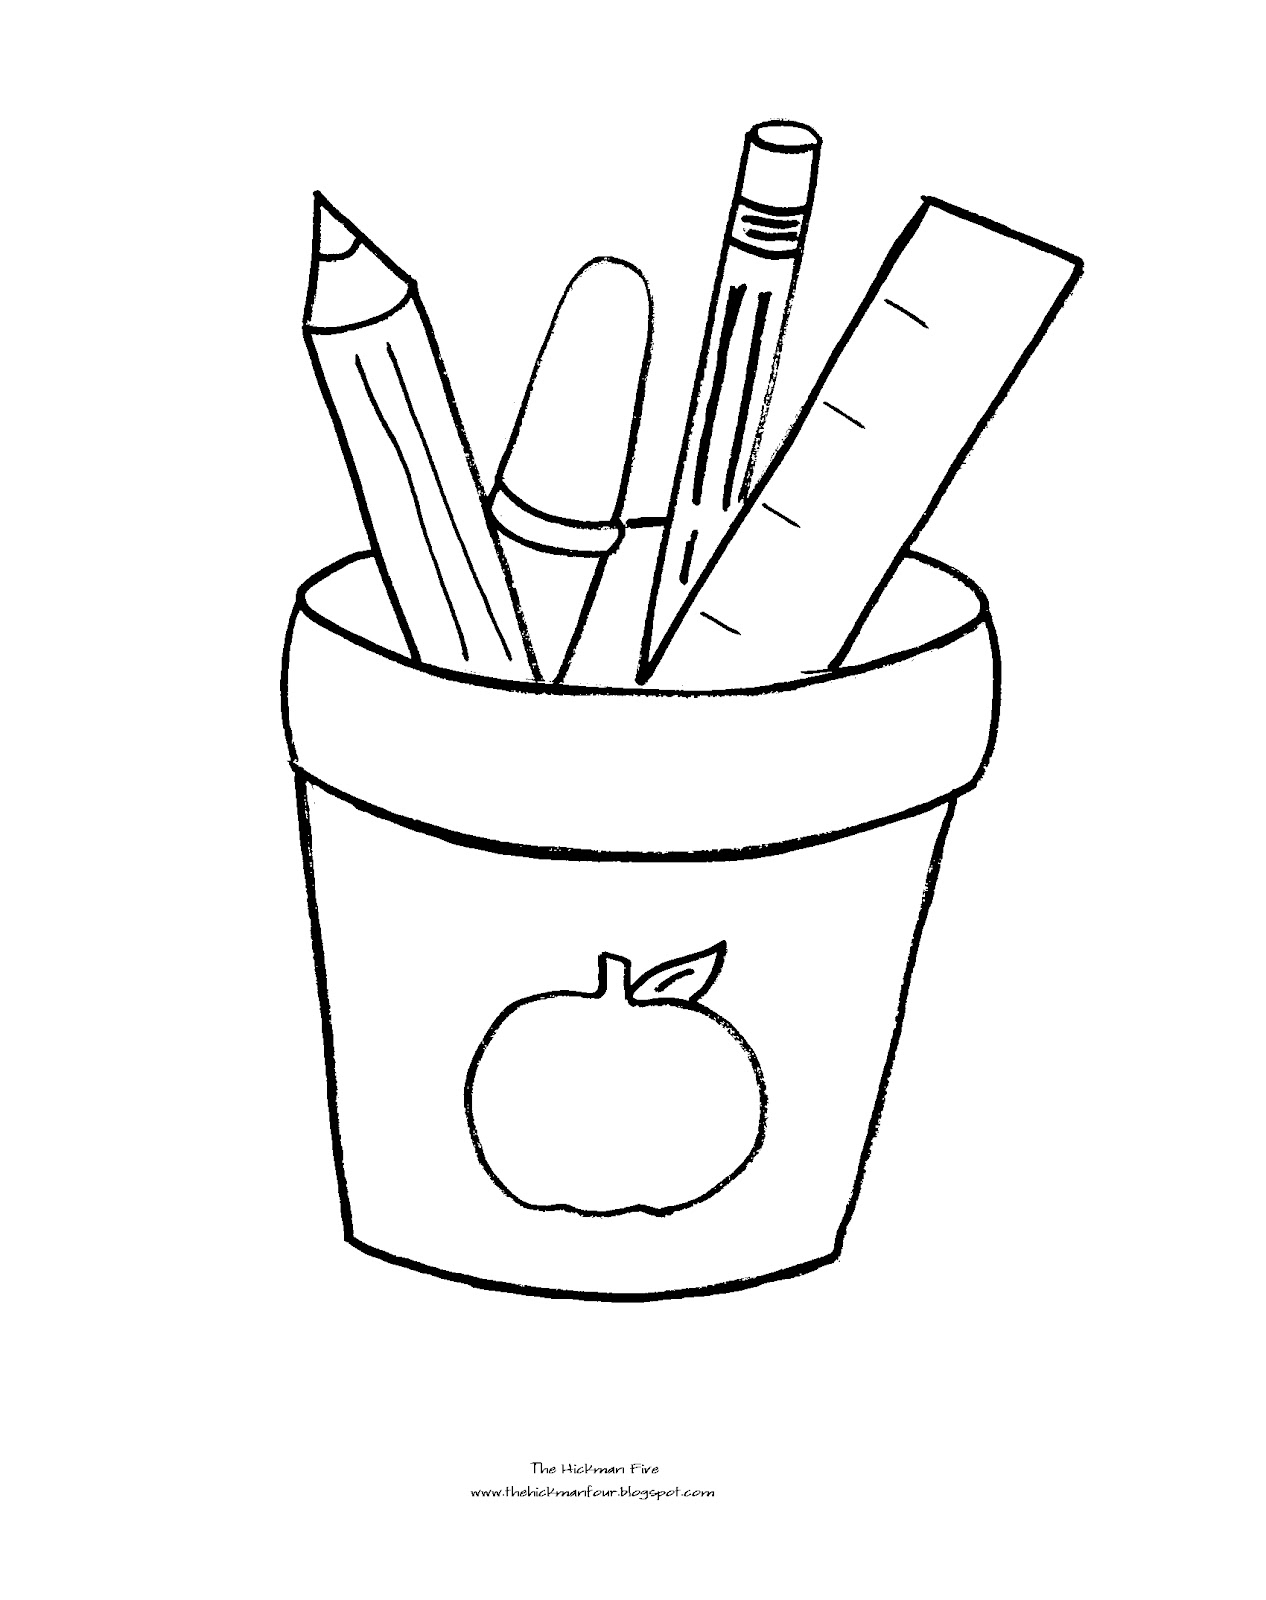 school images coloring pages - photo#25